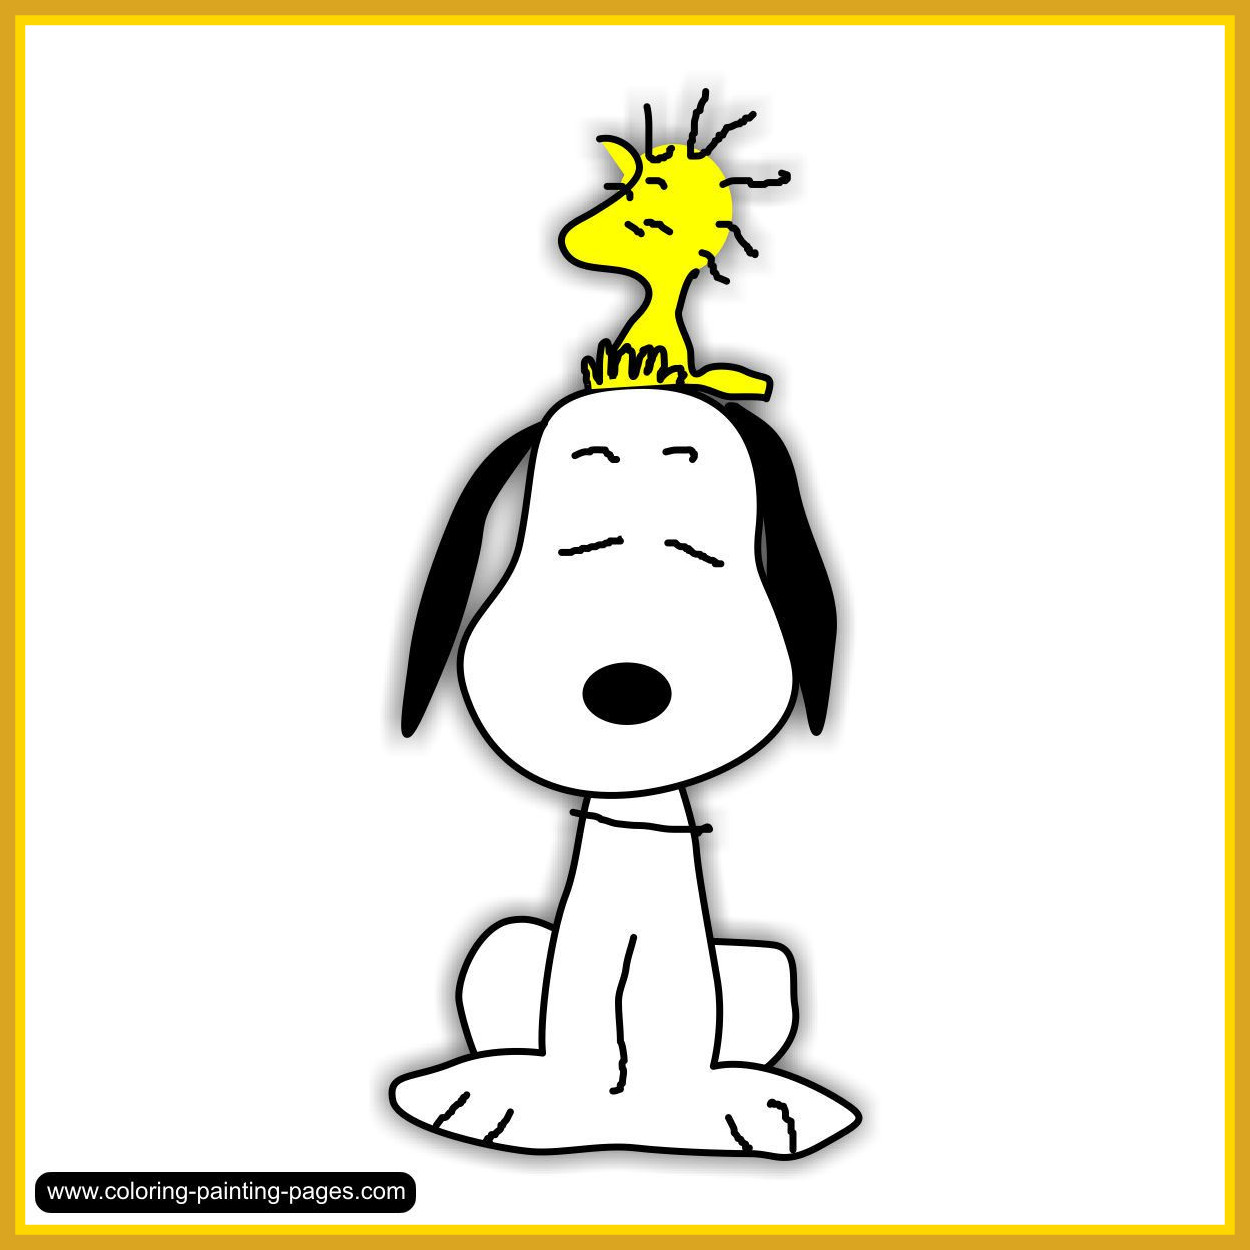 1250x1250 Inspiring Snoopy Spring Clipart Clip Art Library Pict For Coloring